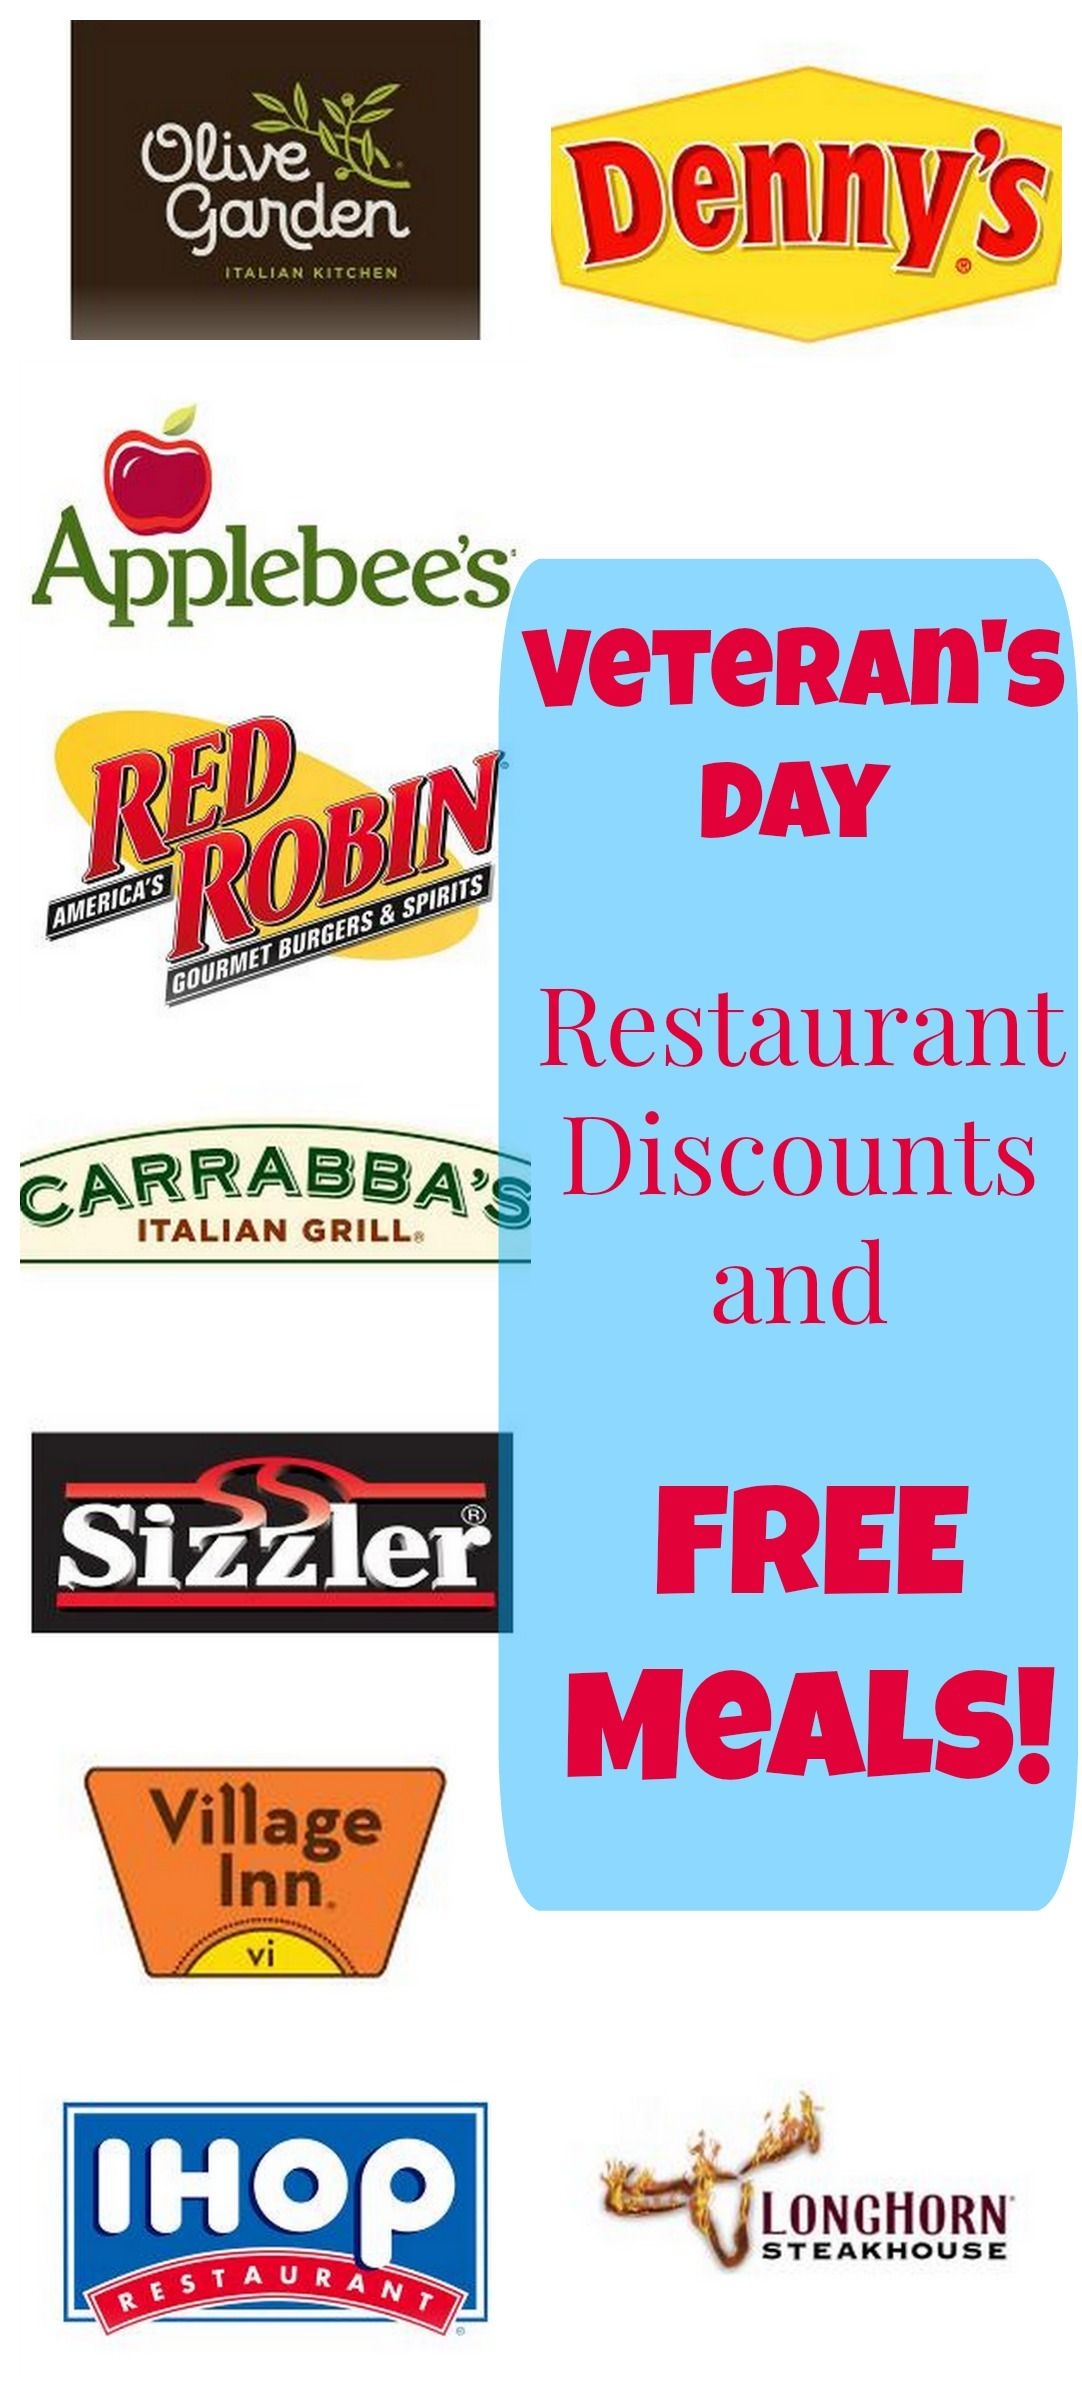 Here's a list of Veteran's Day Restaurant Discounts and